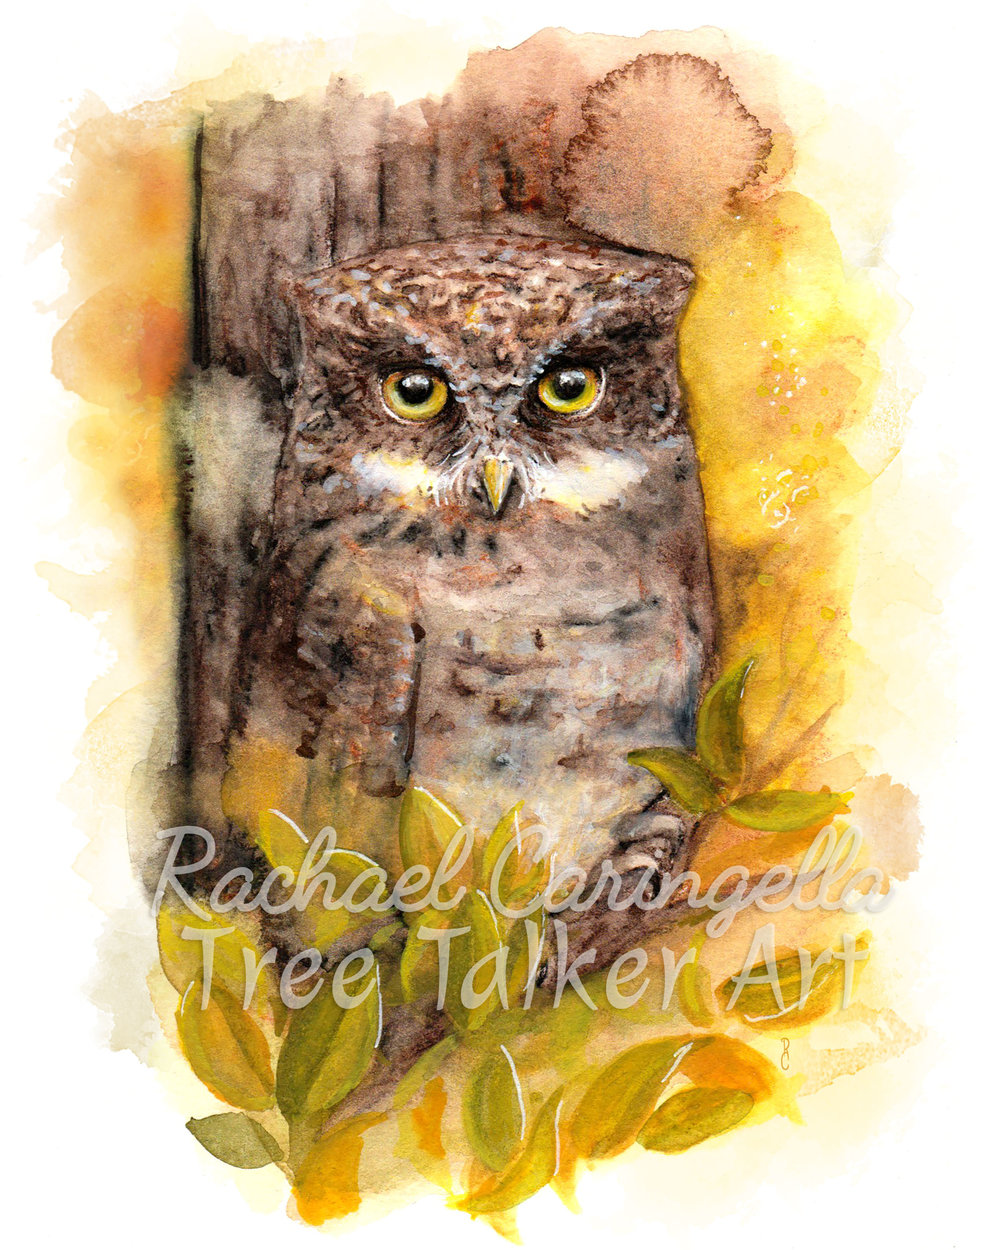 Autumn Owl | Rachael Caringella Watercolor | Tree Talker Art